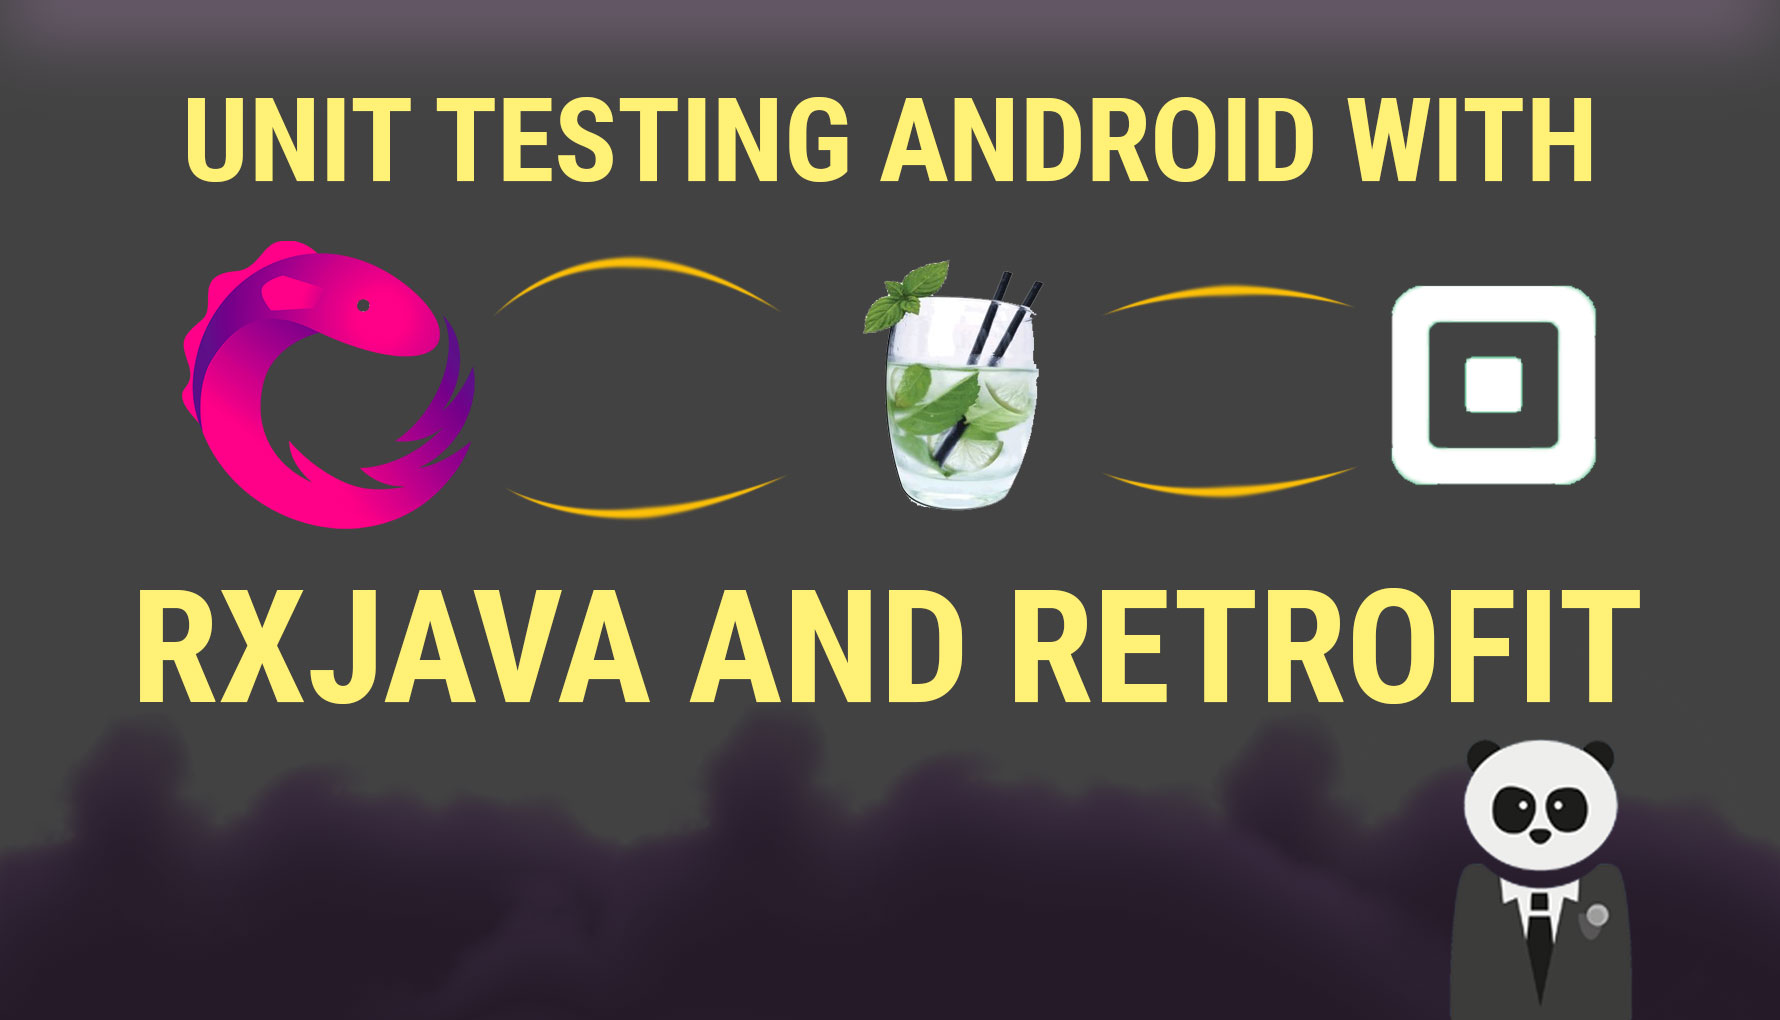 Unit Testing Android with RxJava and Retrofit